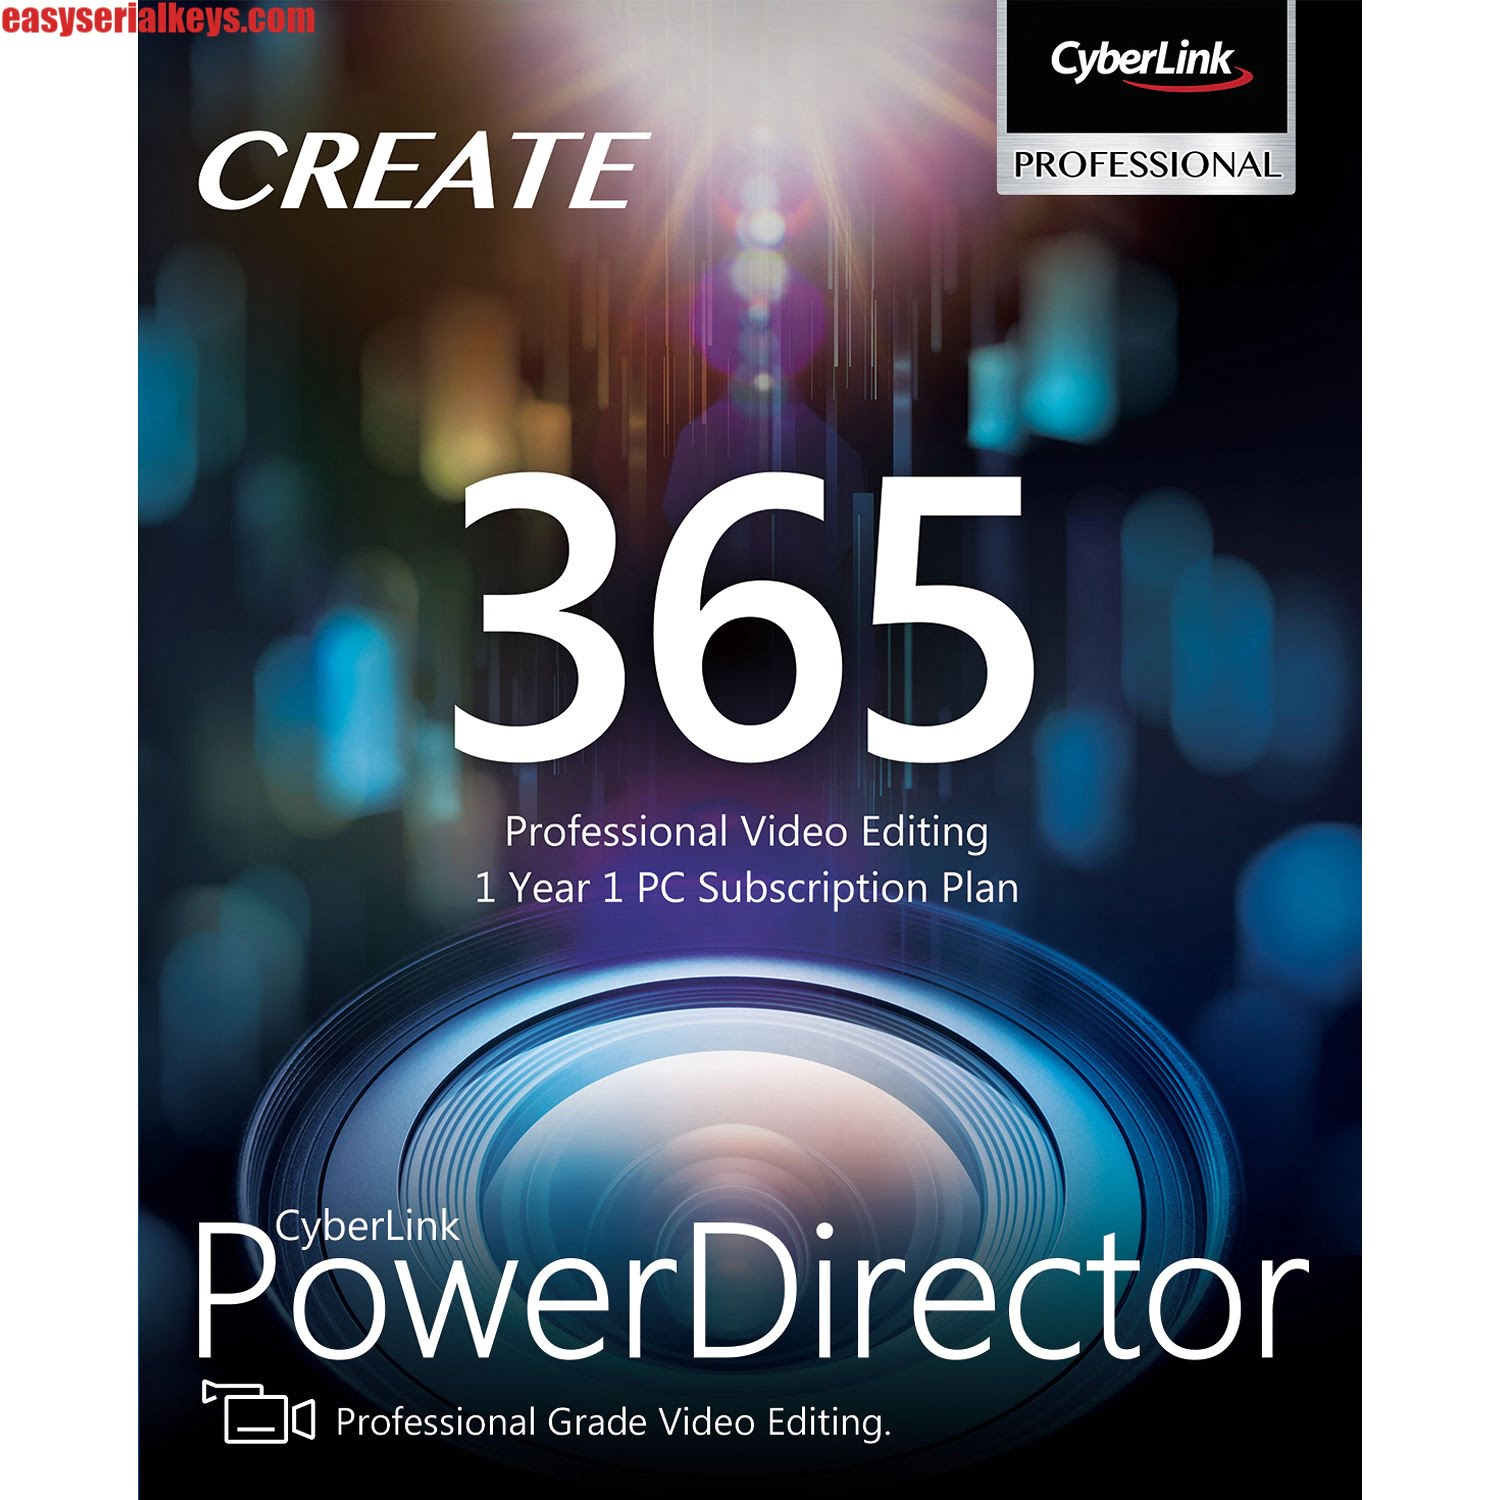 cyberlink pdr e000 rpo0 00 powerdirector 365 1 year subscription 1519291